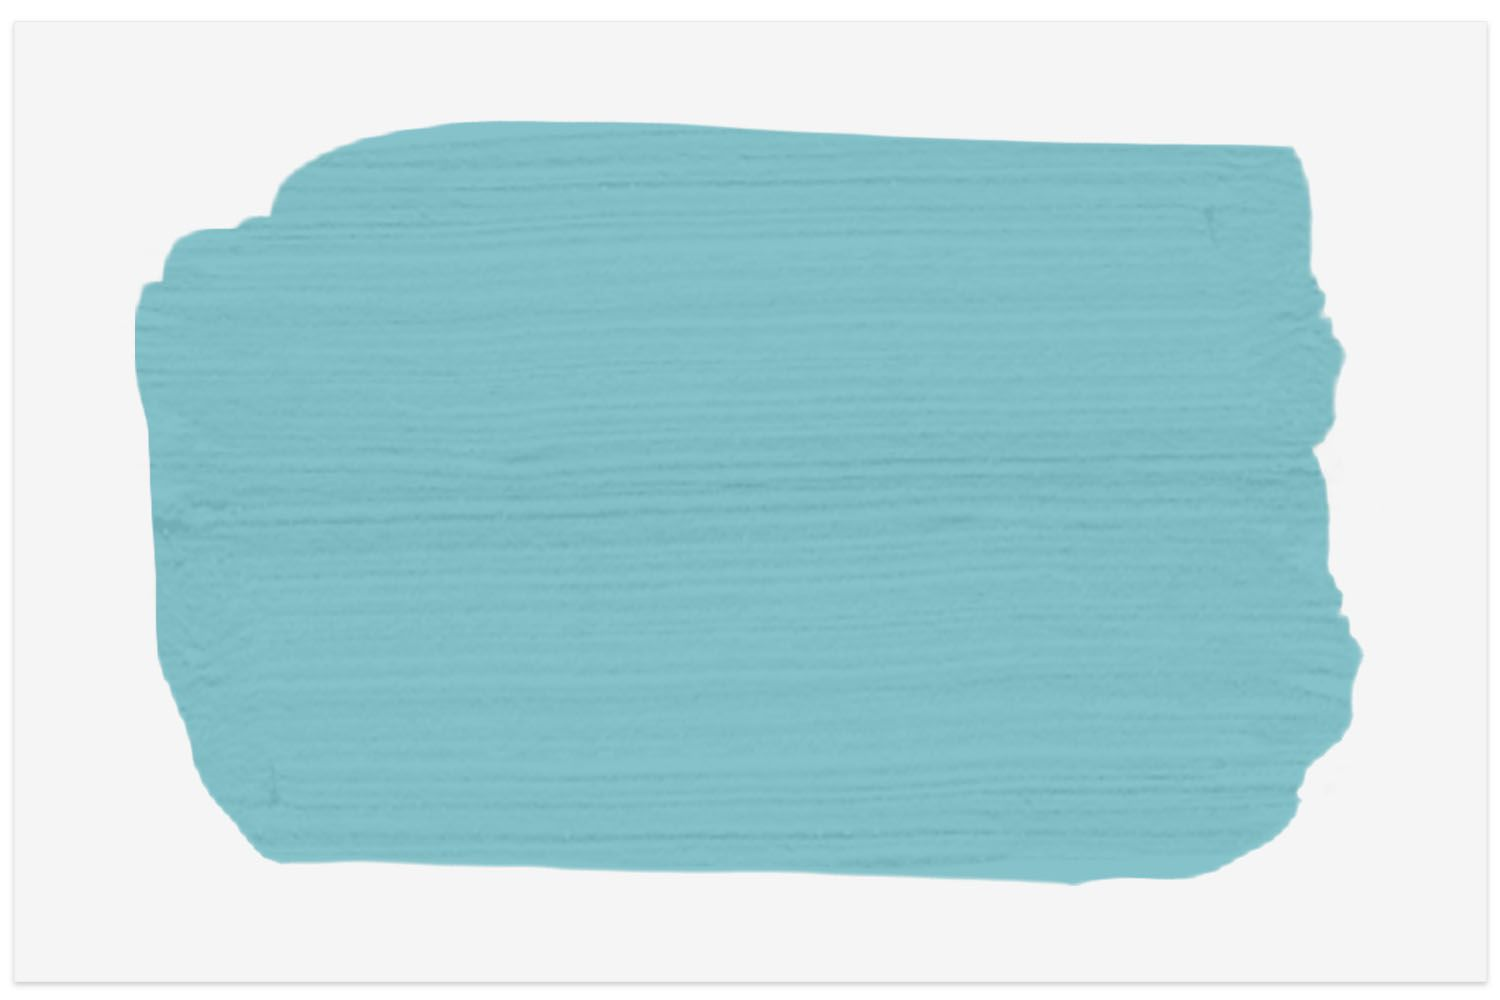 Pool Blue paint swatch by Benjamin Moore